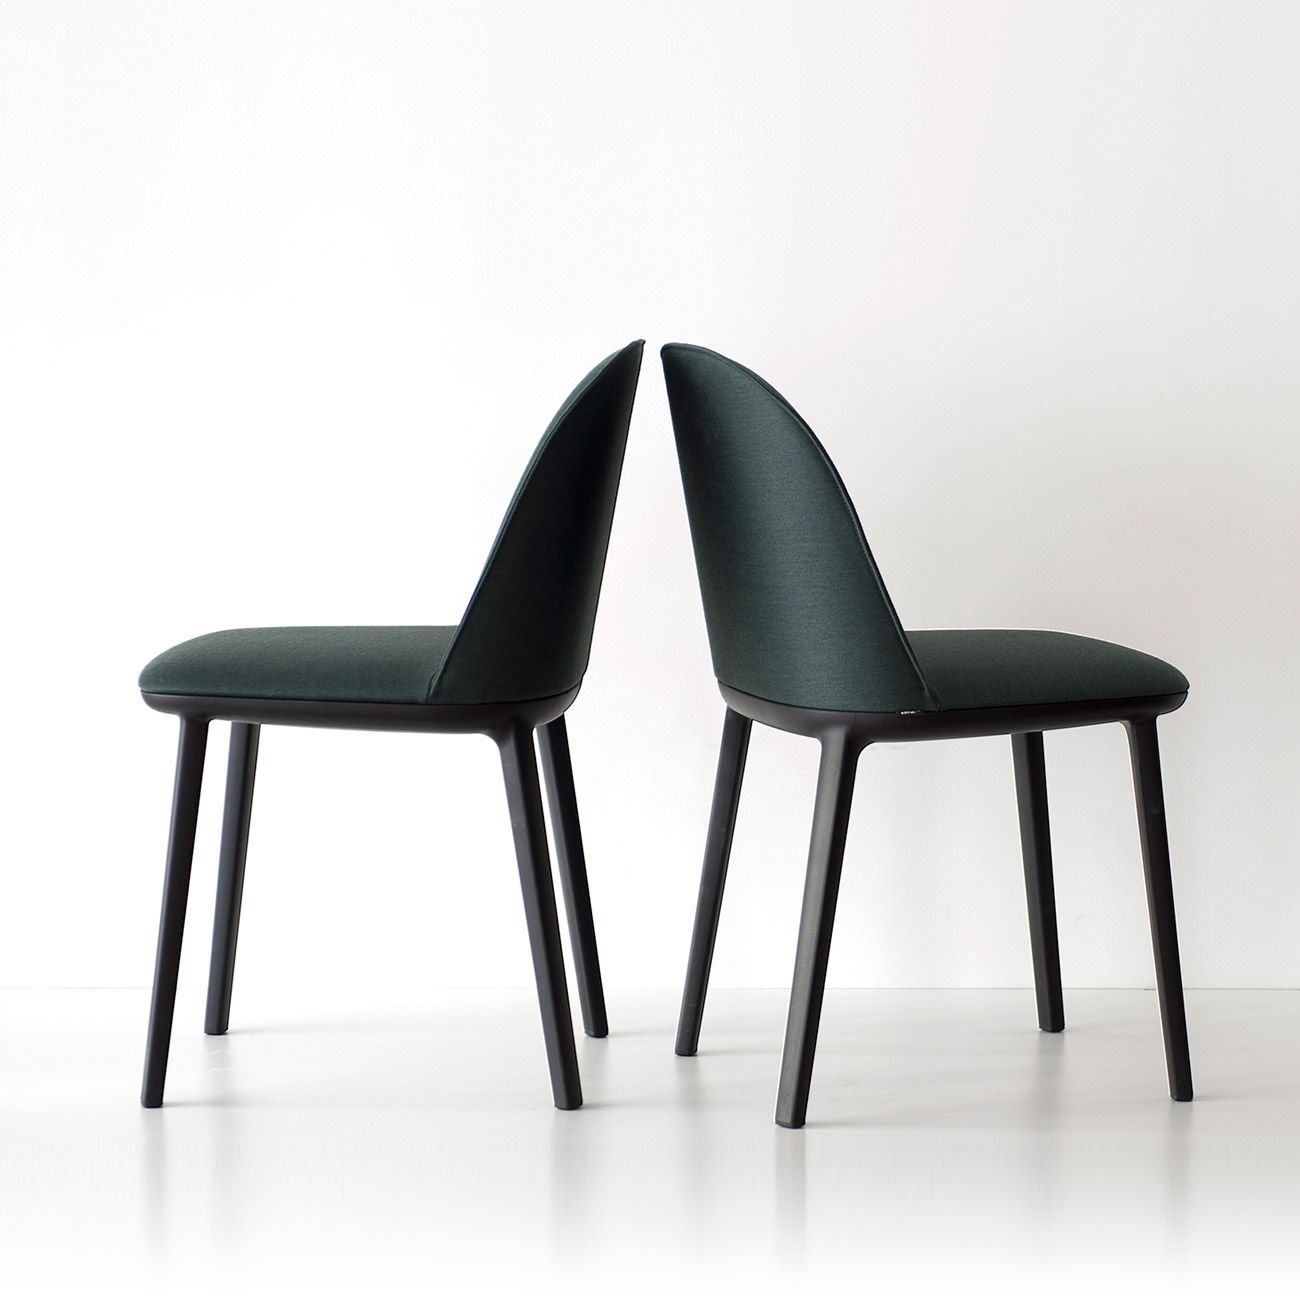 softshell side chair de ronan erwan bouroullec para. Black Bedroom Furniture Sets. Home Design Ideas